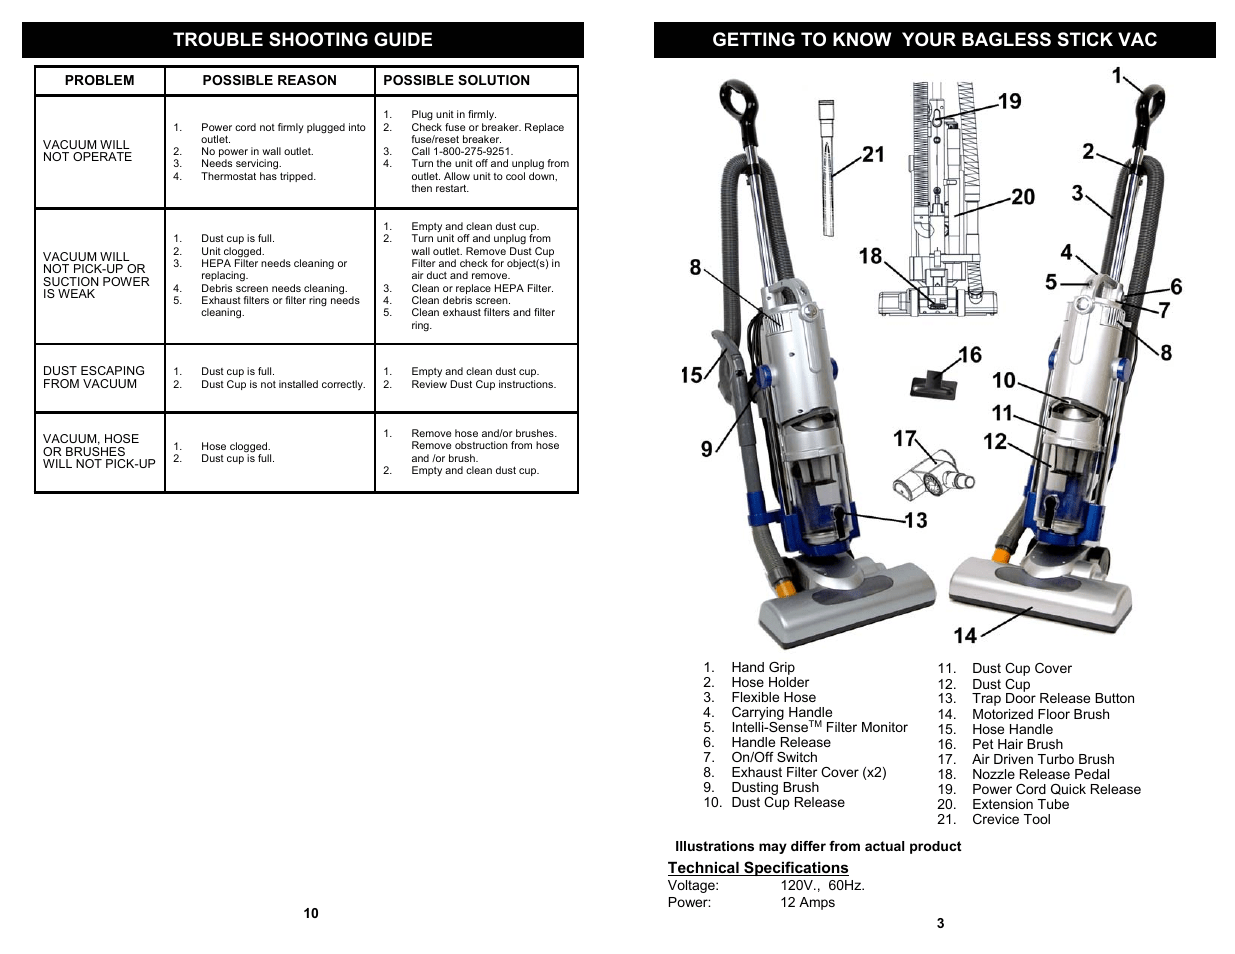 Getting to know your bagless stick vac, Trouble shooting